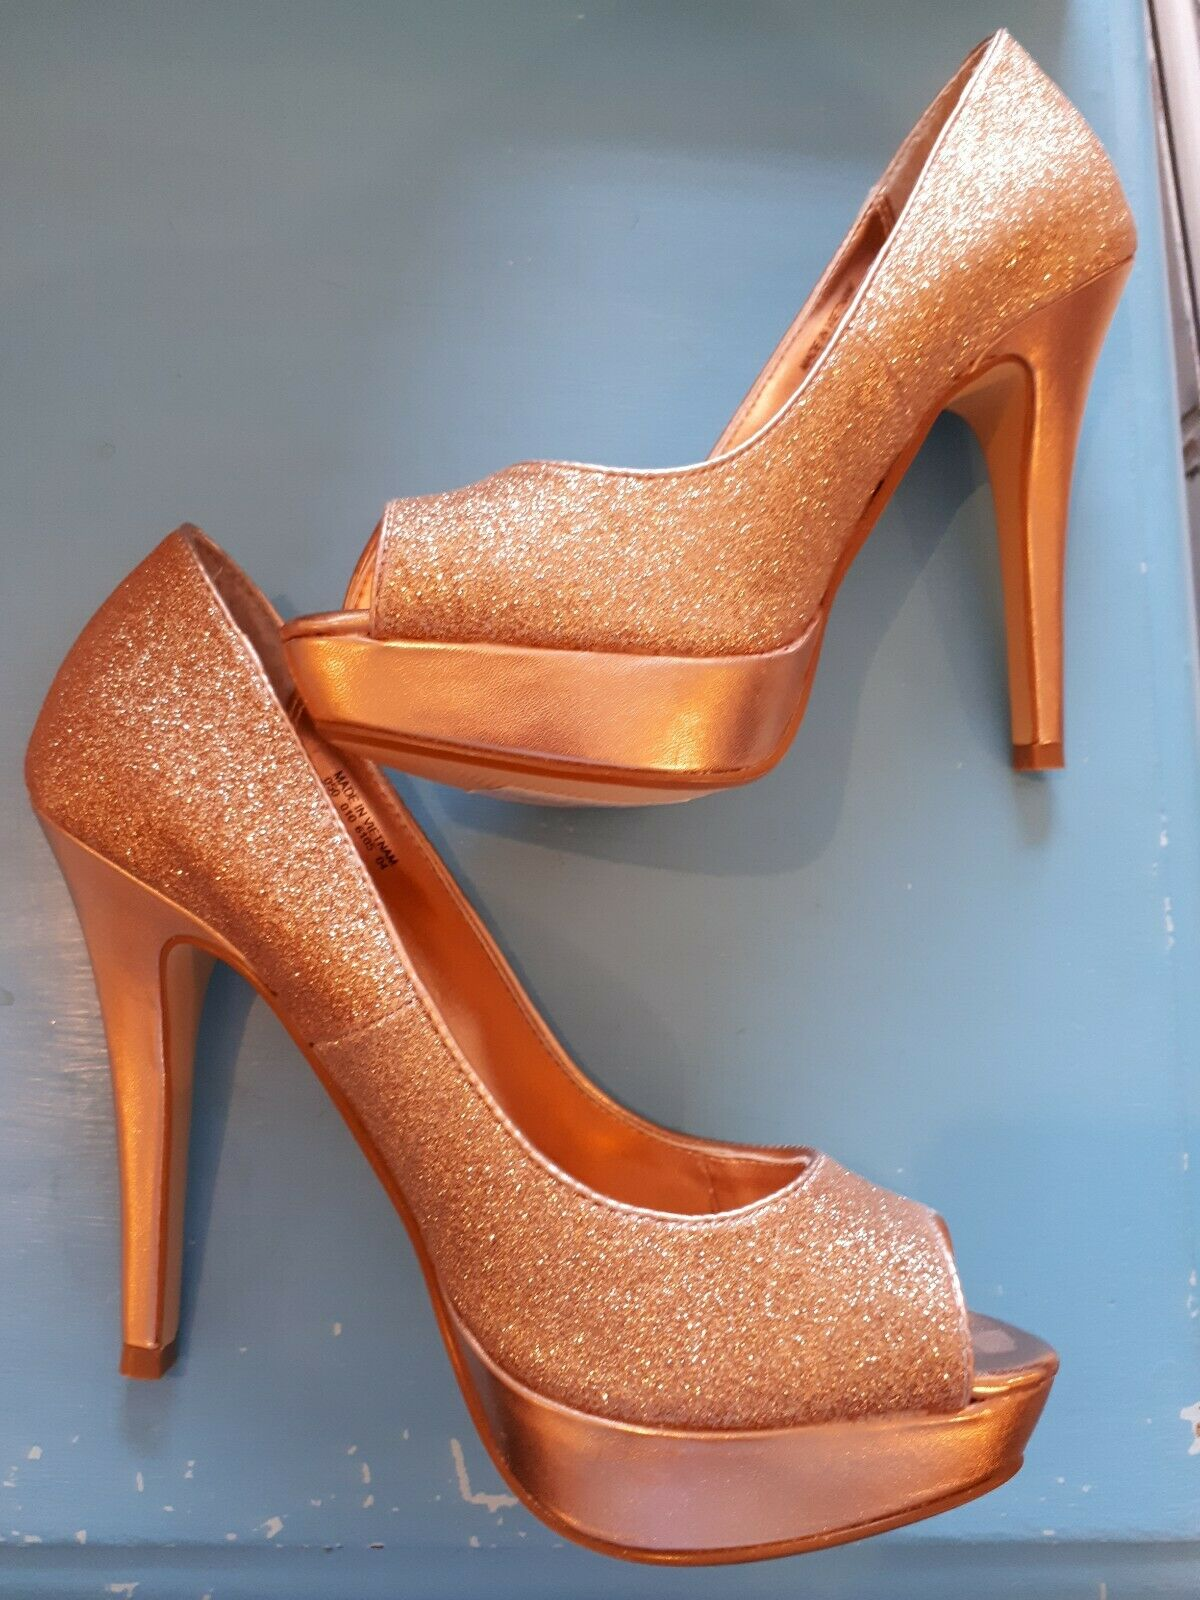 Debenhams Red Herring NUDE GLITTER PEEP TOE PLATFORM HEELS SHOES SIZE 5 BNWOB